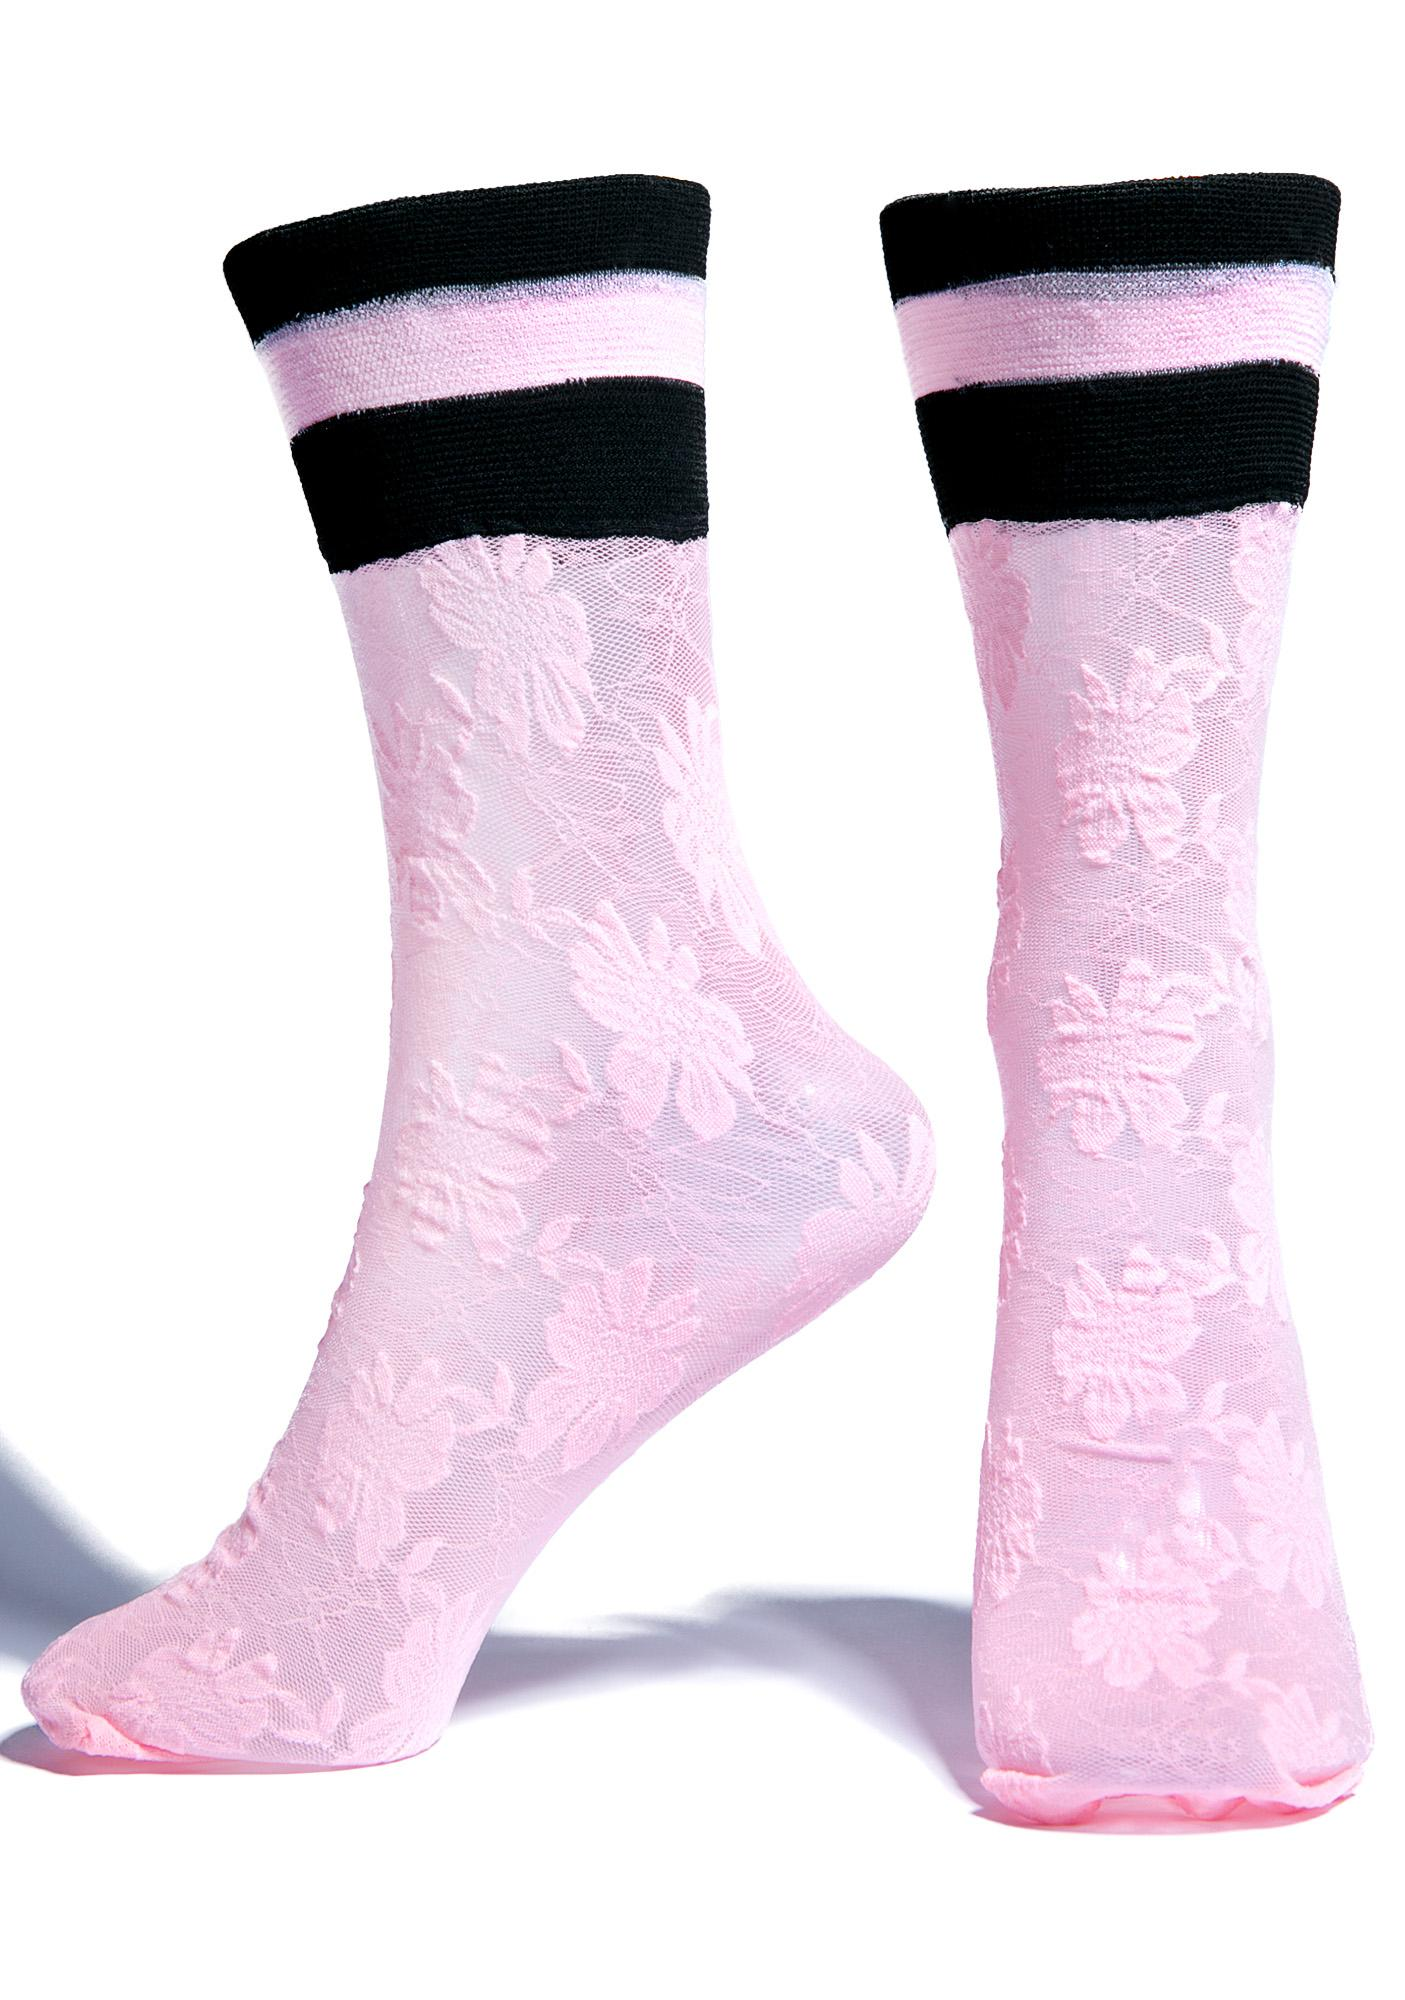 Stance Lace Trouser Socks cuz each step with yew is sweeter than the next, bb. These charming lace socks were designed with Rihanna and feature a sweet, sheer floral design with a rugby-striped crew that'll always stay upright whether yer tip-toeing or stepping as an IT tentrosegaper.ga: Stance.